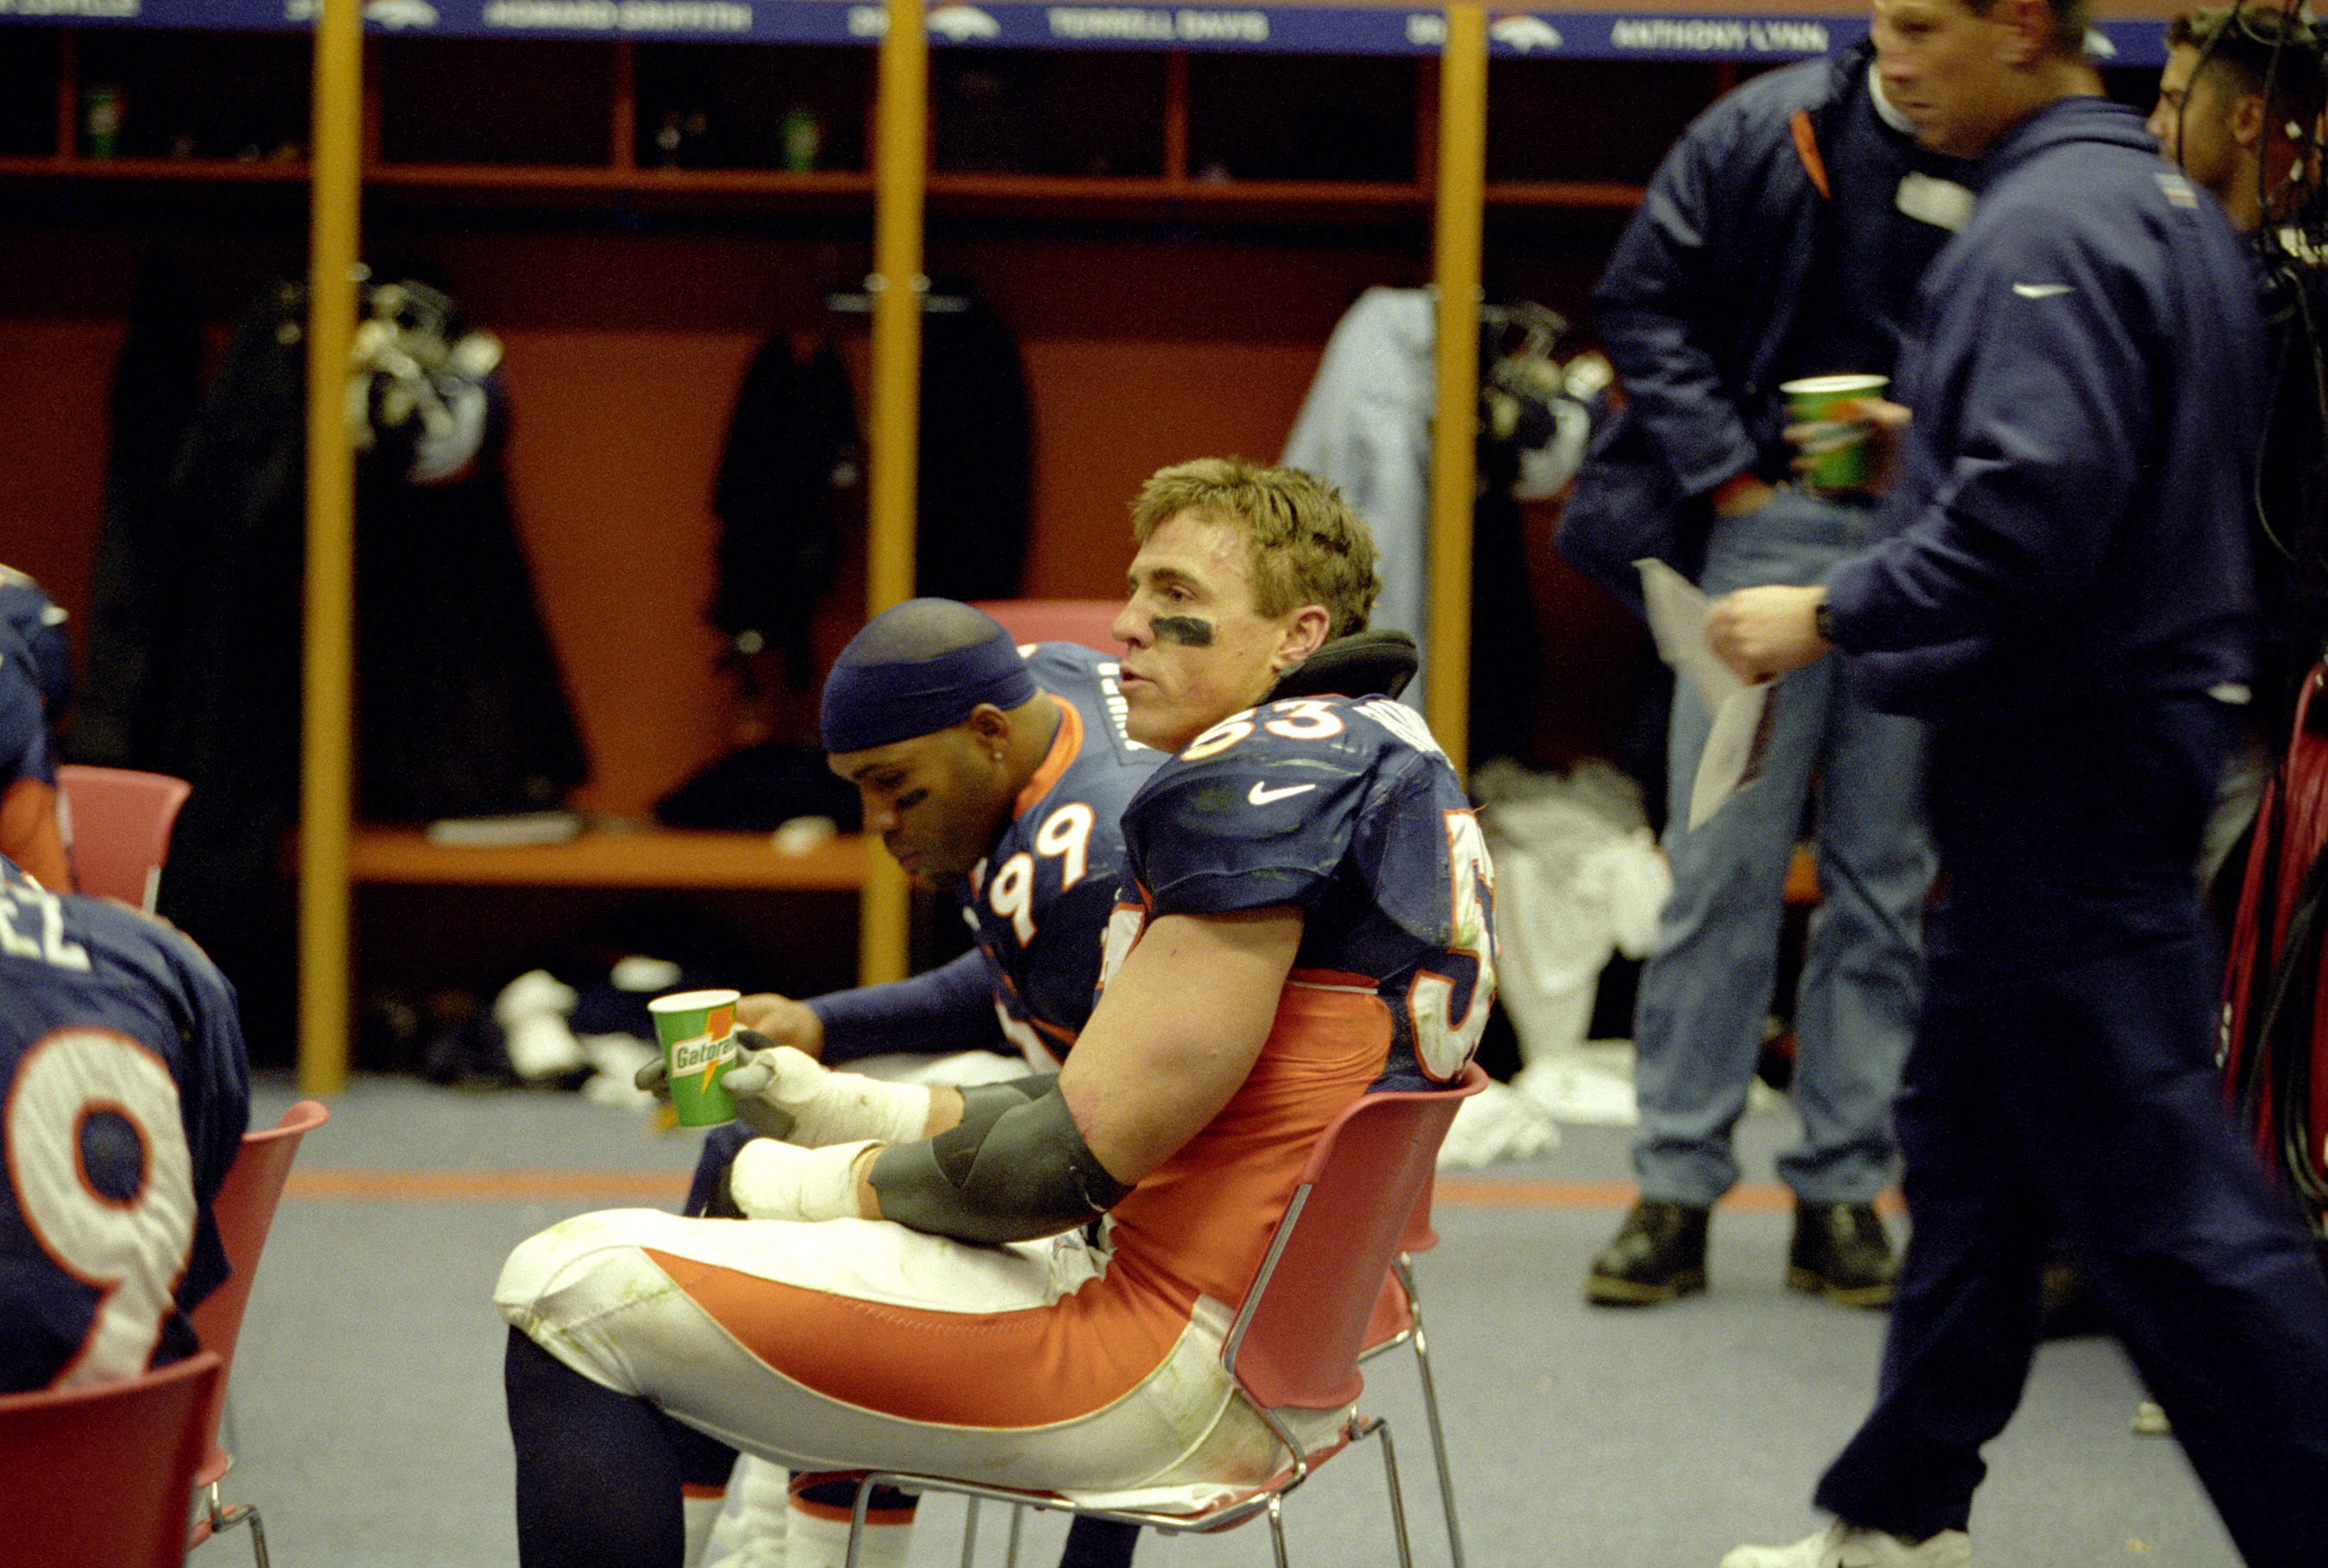 Denver Broncos linebacker Bill Romanowski (53) sita and relaxes in the locker room at halftime of the Broncos 23-10 victory over the New York Jets in the 1998 AFC Championship Game on January 17, 1999 at Mile High Stadium in Denver, Colorado. (Photo by E. Bakke/Getty Images)